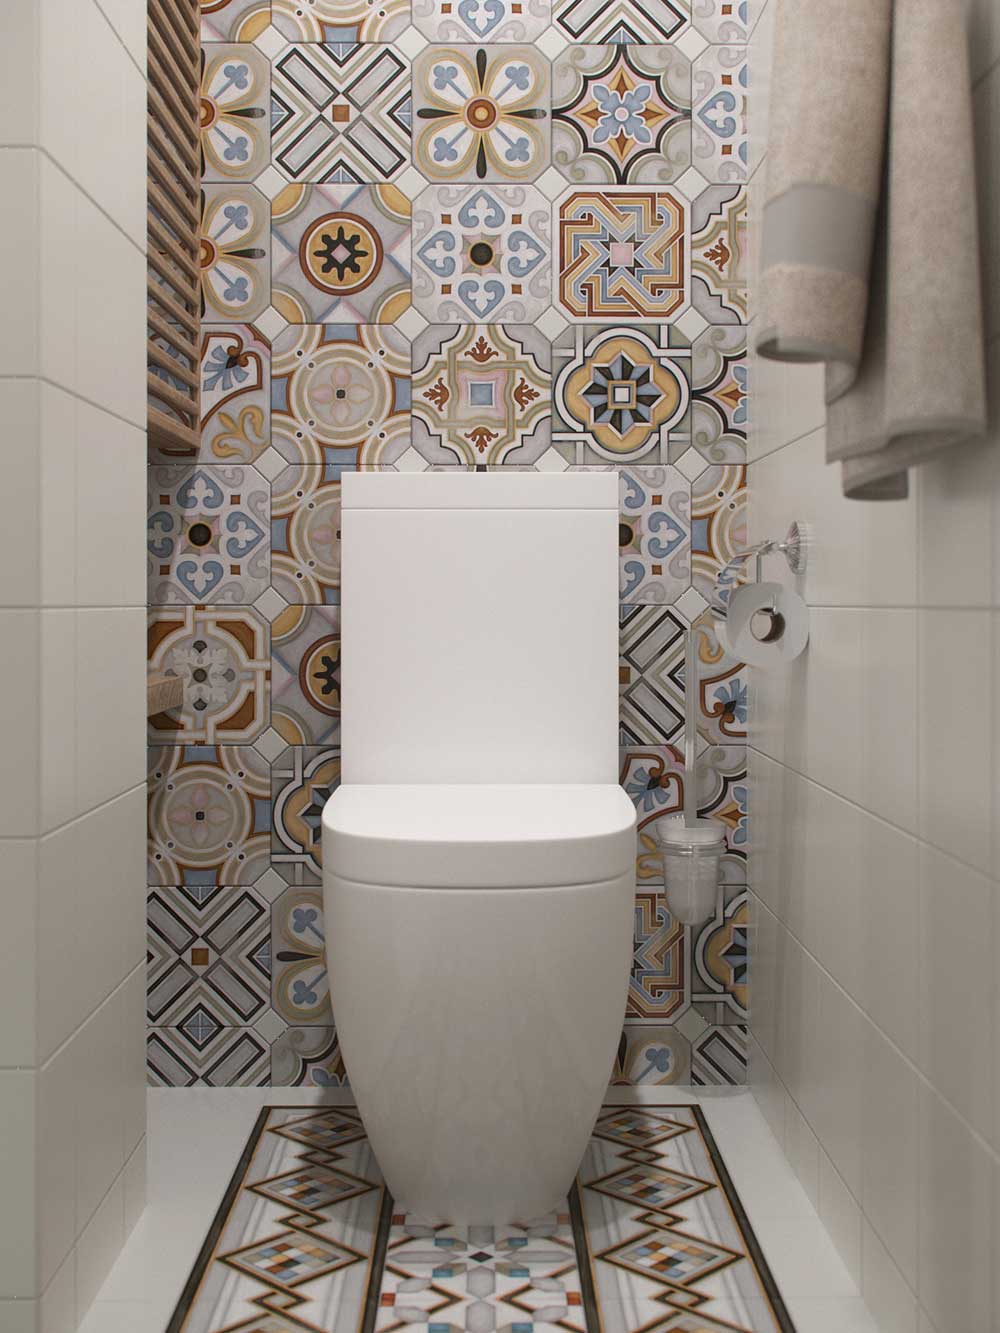 tiny apartment tile design jl - Amur Tiny Apartment Design